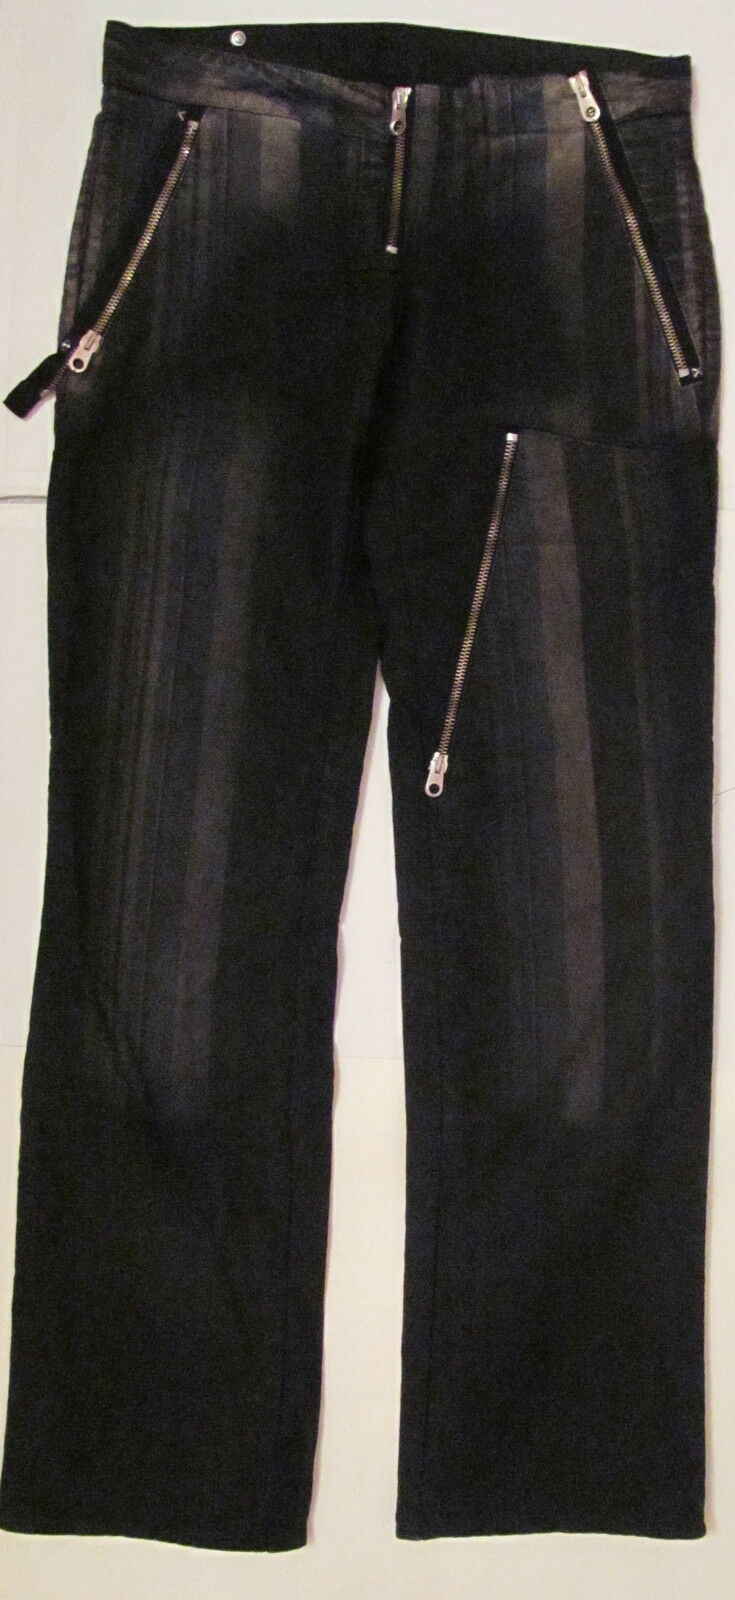 Rare vintage DIESEL  STAFF INTERNATIONAL  striped zippers goth punk jeans pants